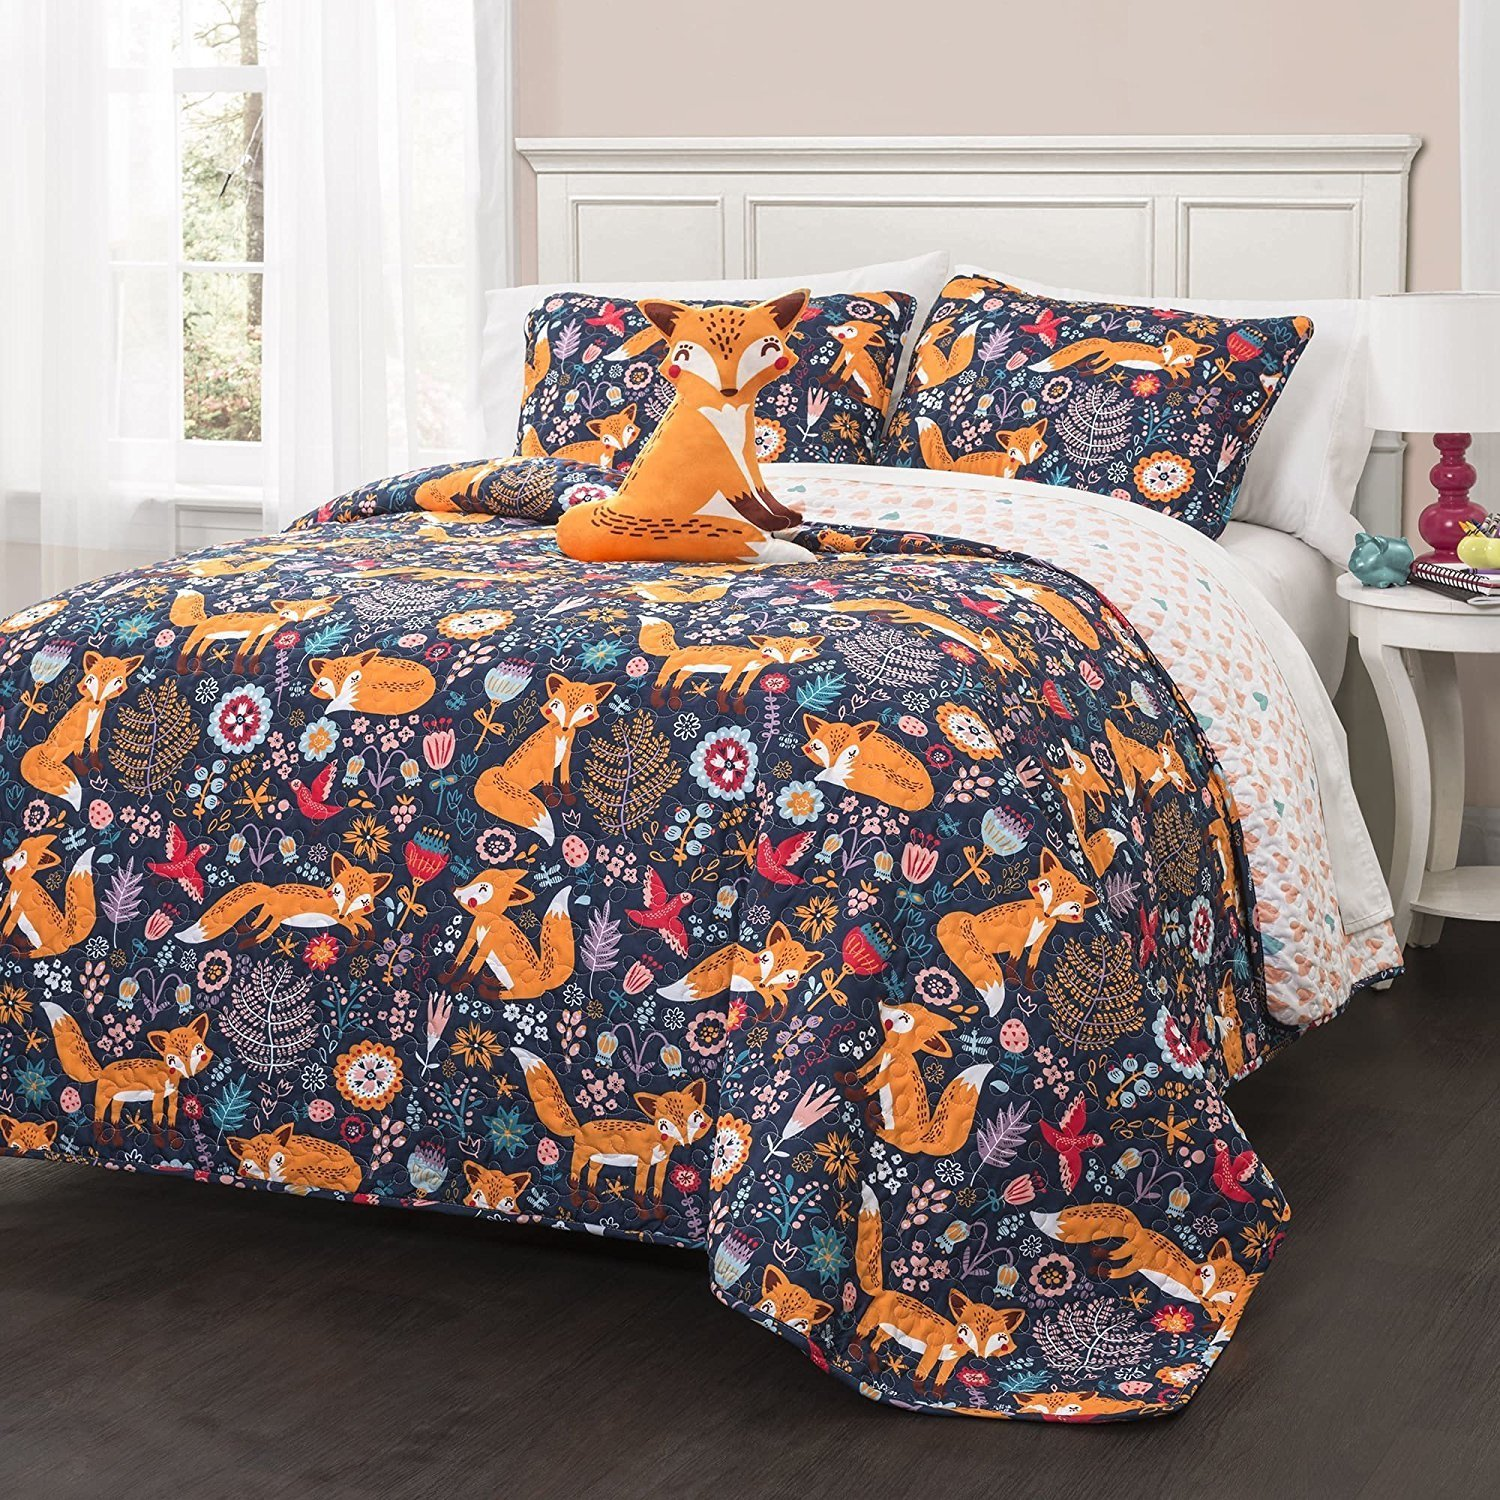 3pc Navy Blue Kids Animal Twin Quilt Set, Orange Grey Pink Frolicking Cute Fox Theme Bedding, Lightweight Floral Geometric Medallion Flowers Birds Hearts, Polyester